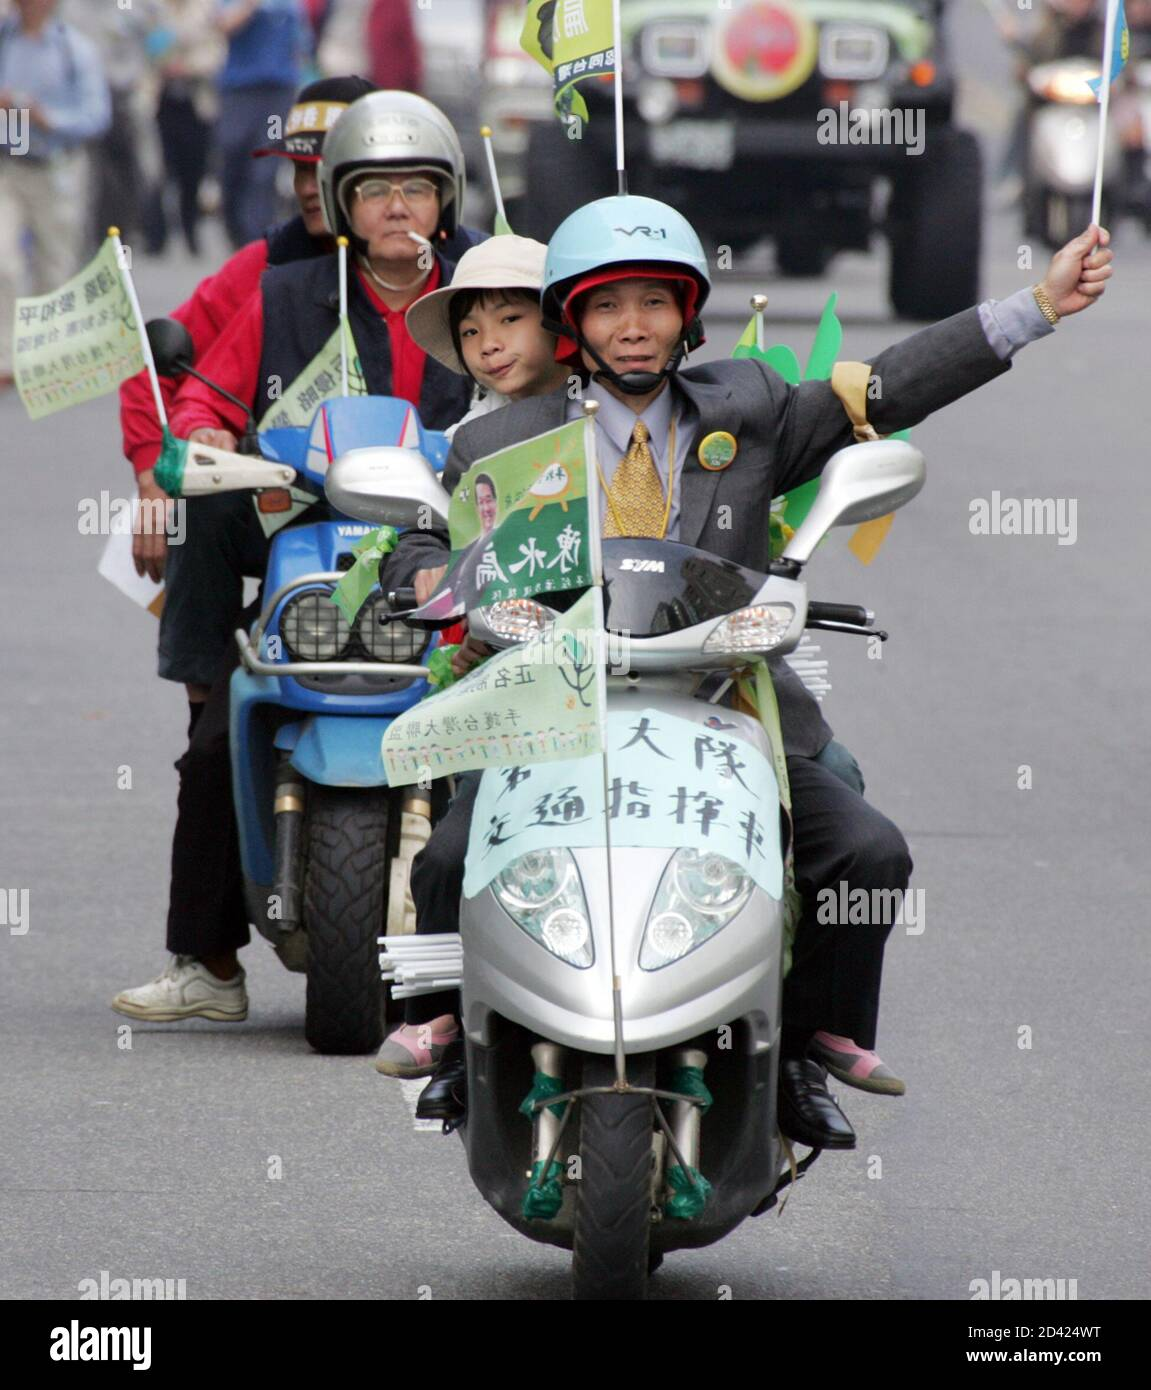 """Taiwan residents ride scooters and wave flags at a protest against China's anti-secession law in Taipei March 26, 2005. Hundreds of thousands of people chanting """"Oppose war, Love Taiwan"""" joined a protest against China's military threat in Taipei on Saturday. Organisers aimed to rally one million people in a show of people power against Beijing's anti-secession law, which sanctions the use of force against the island, but Taipei police estimated the crowd at just more than 230,000 so far. REUTERS/Richard Chung  TW/CCK Stock Photo"""